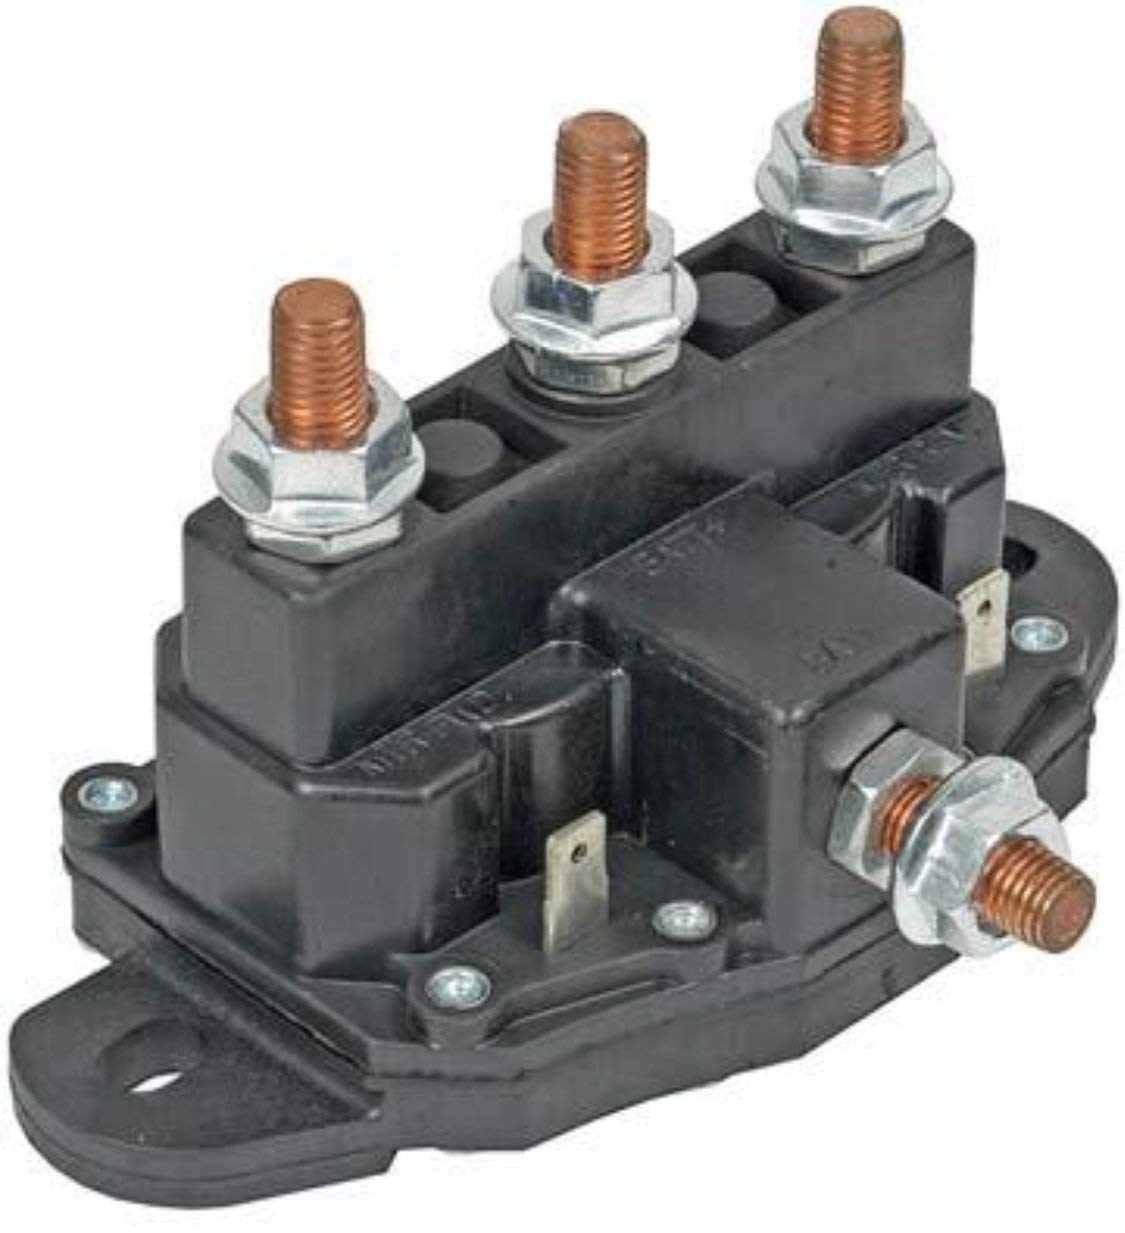 12 Volt Reversing Continuous Duty Solenoid Relay Winch Motor, Windlass Model: SSPL-111 Crank-n-Charge